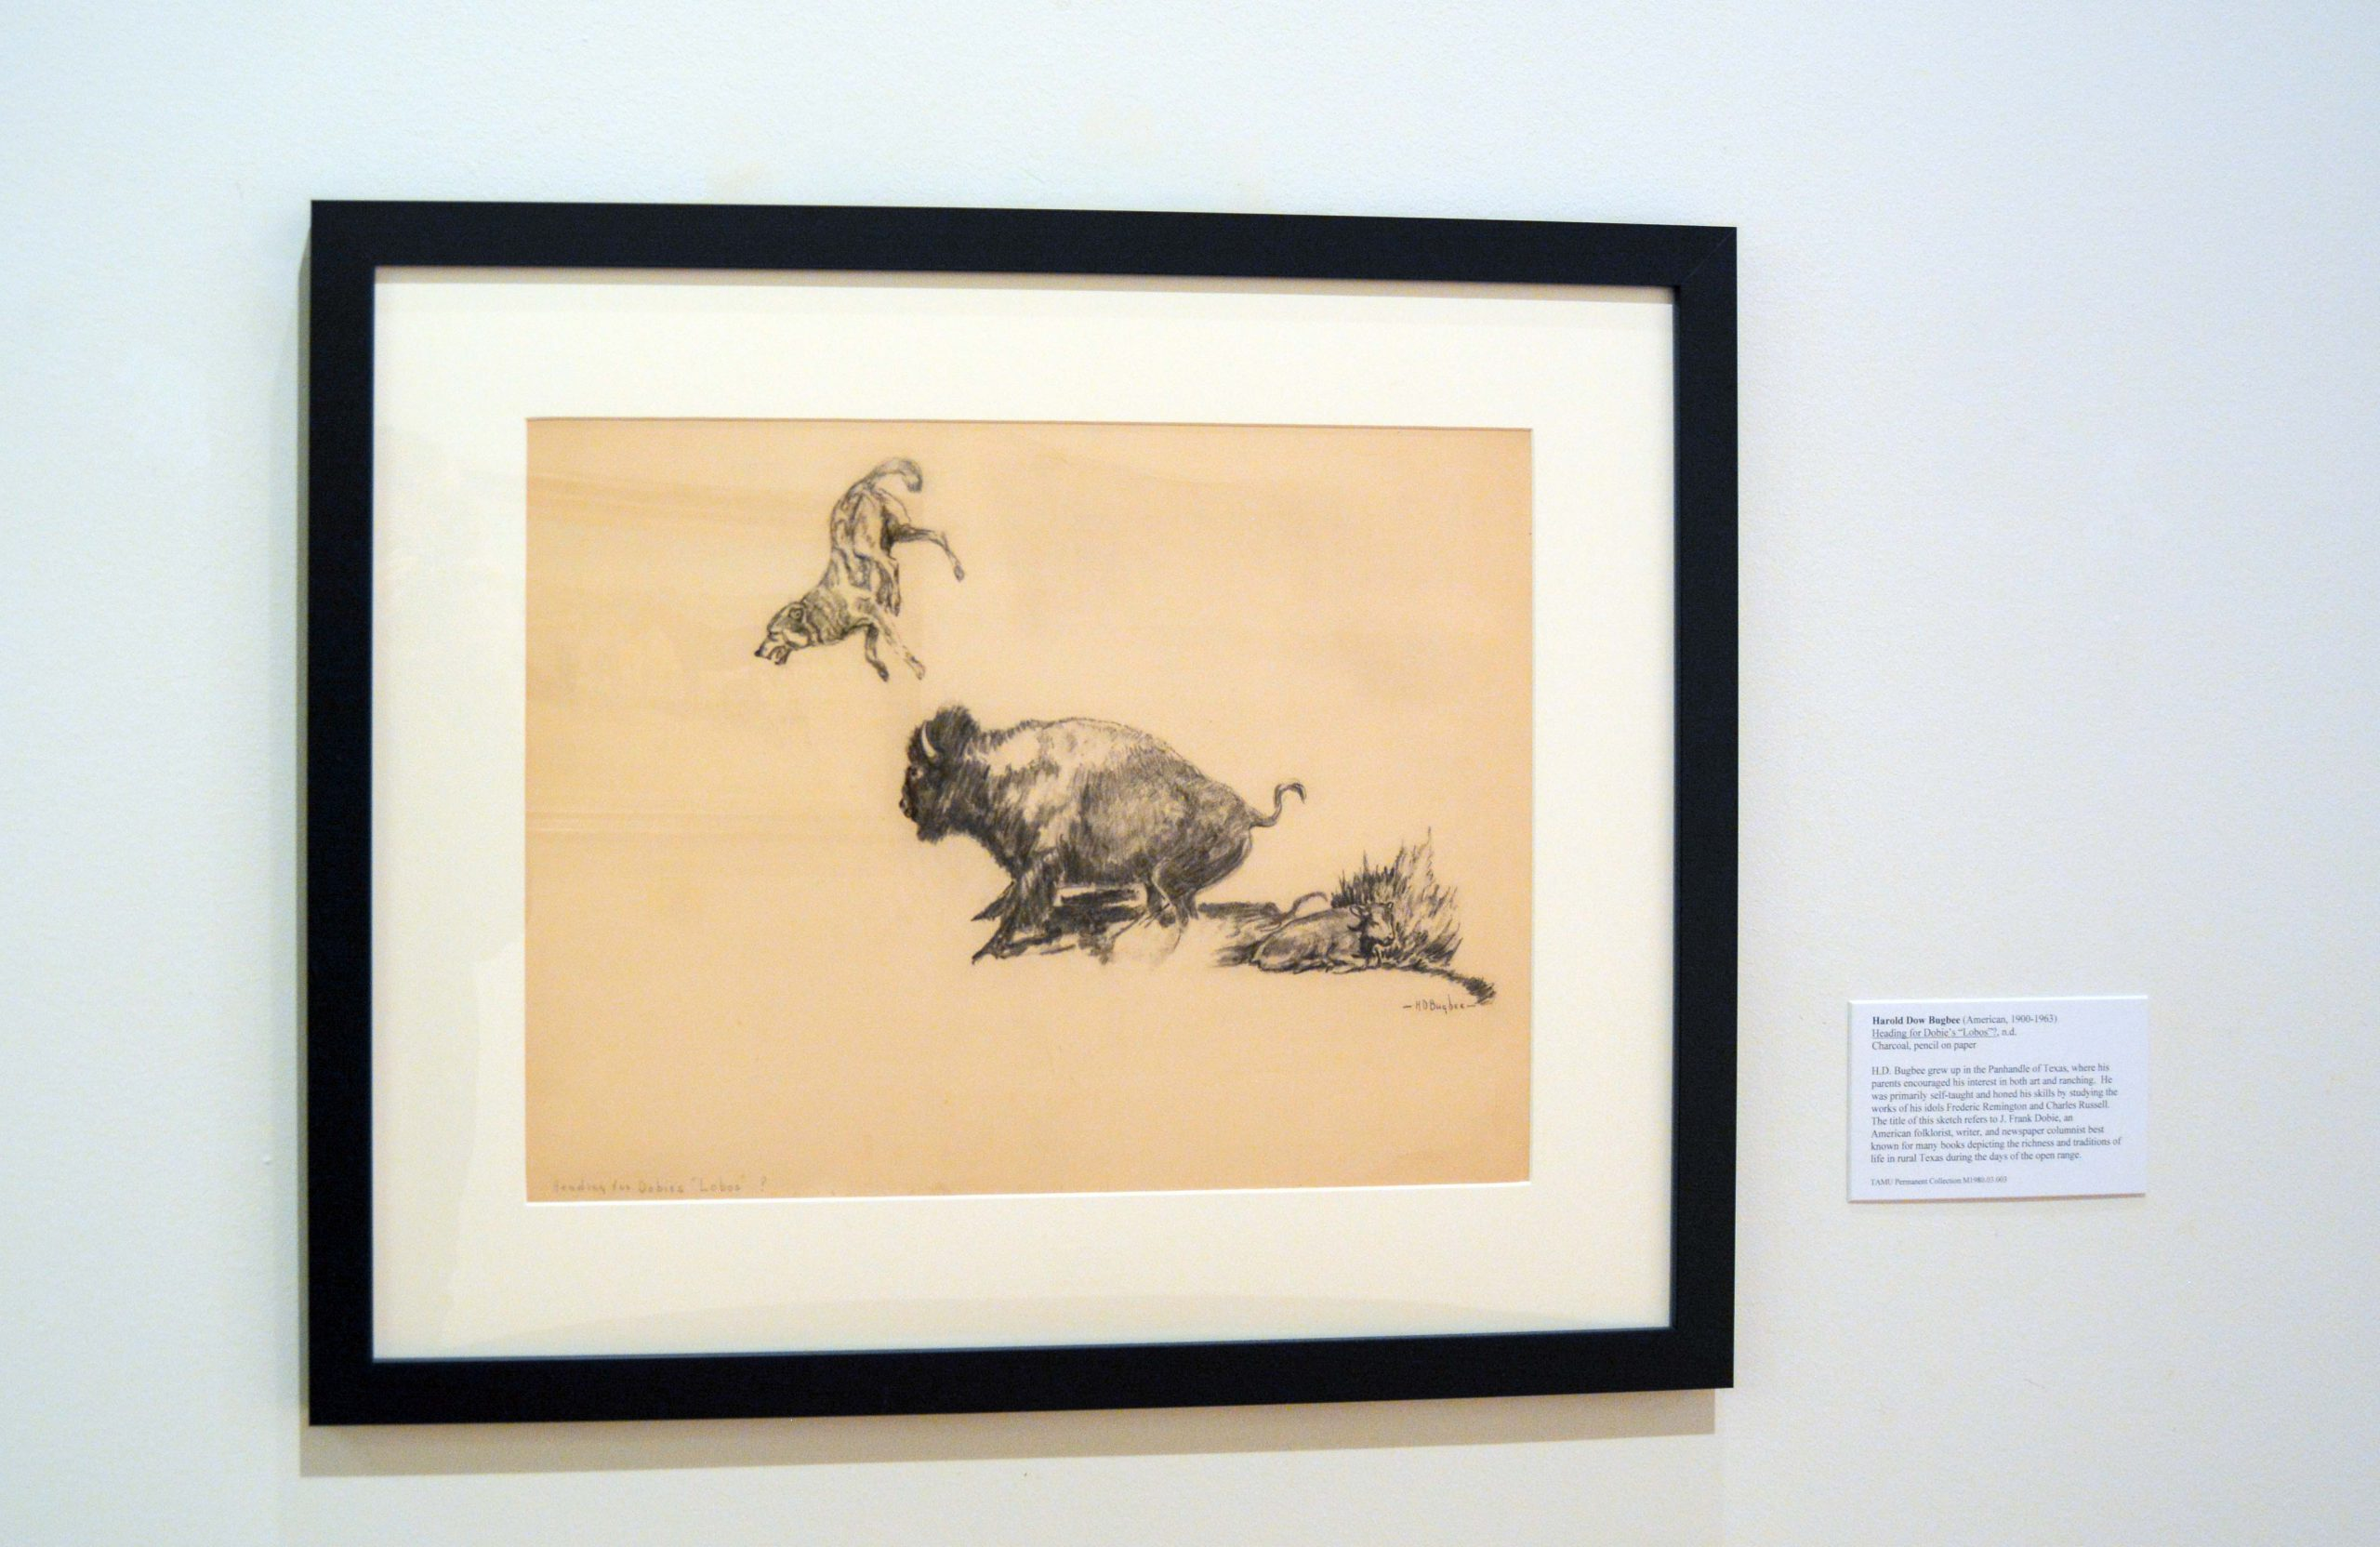 Drawing of a buffalo bucking a coyote in the air